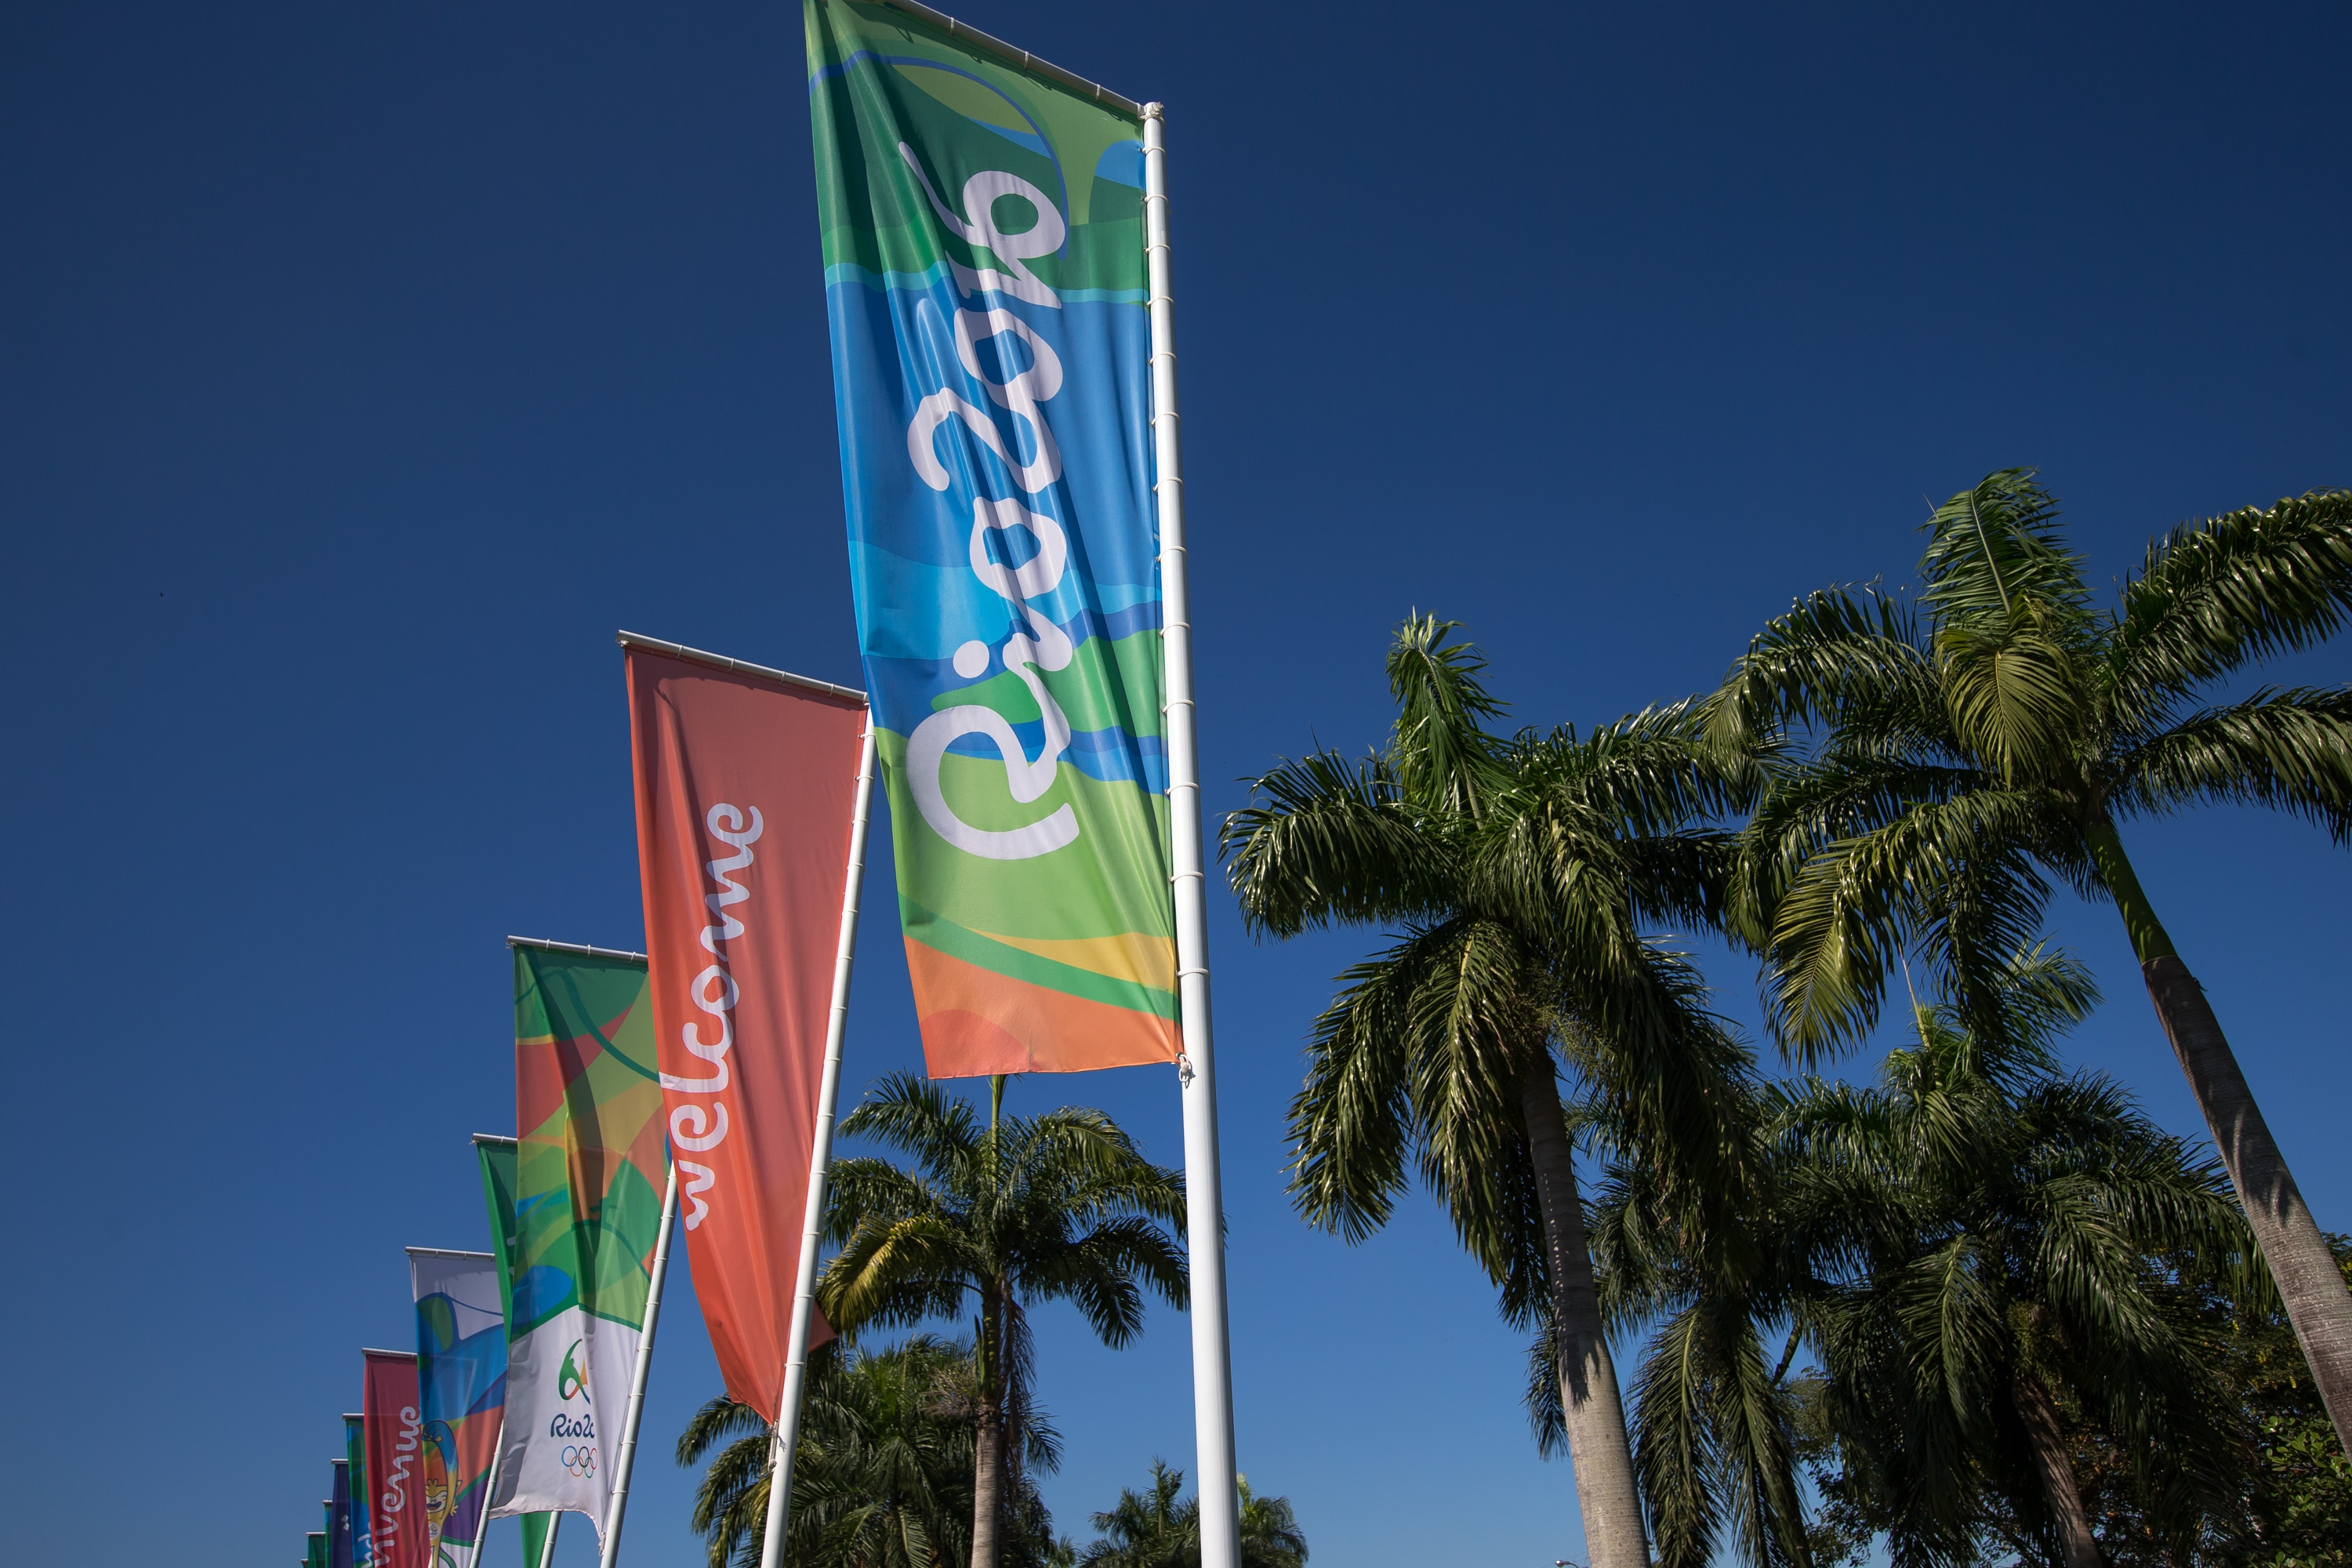 Flags with the logo of Rio 2016 Olympic and Paralympic Games, among others, read 'Welcome' in different languages.